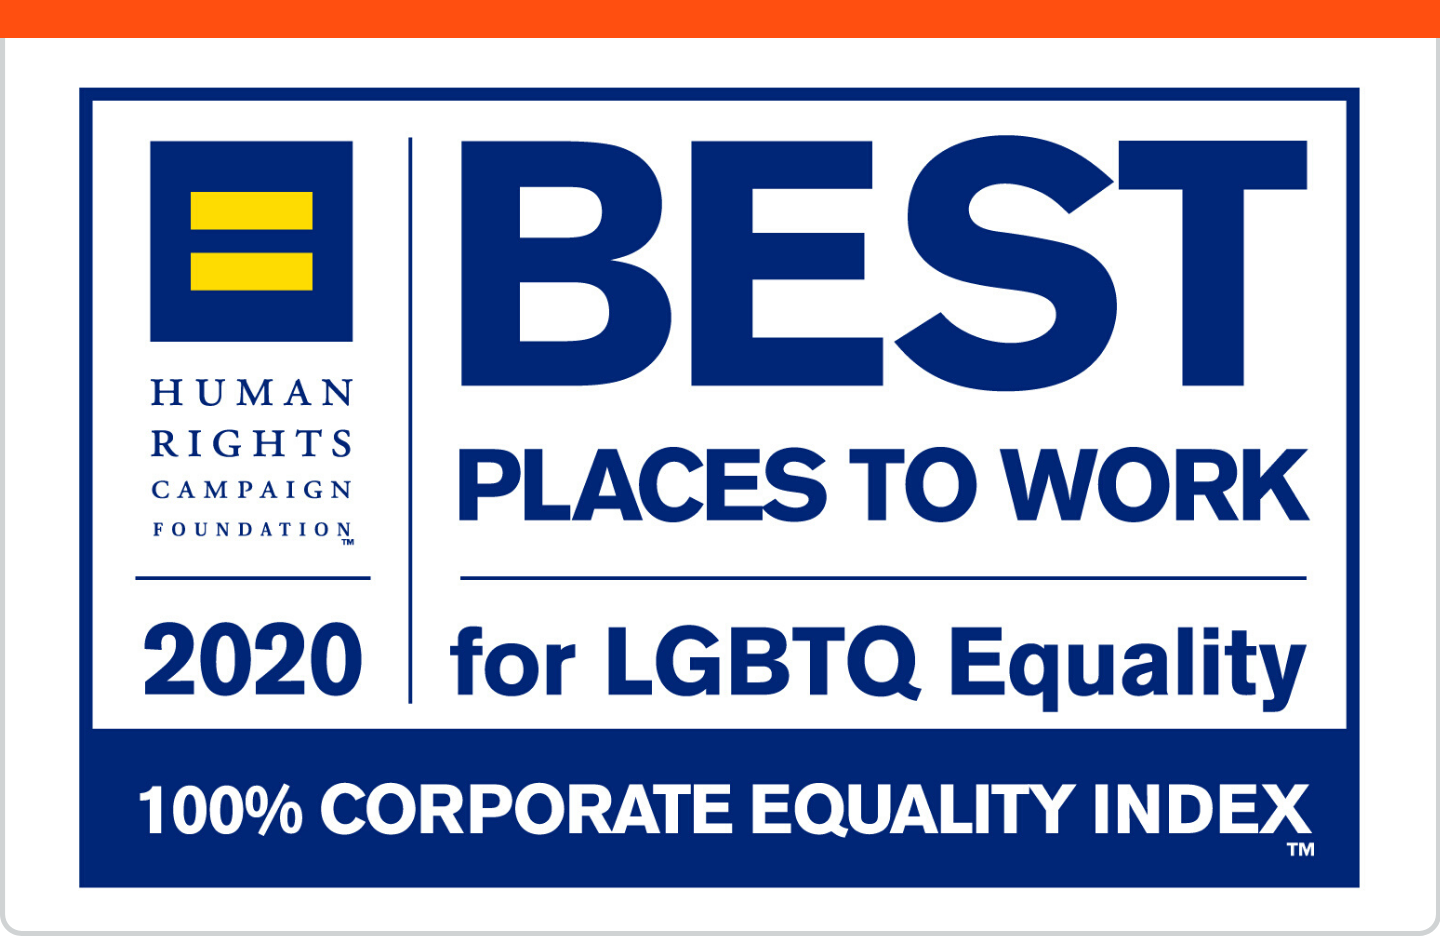 Best Places to Work 2020 for LGBTQ Equality by the Corporate Equality Index